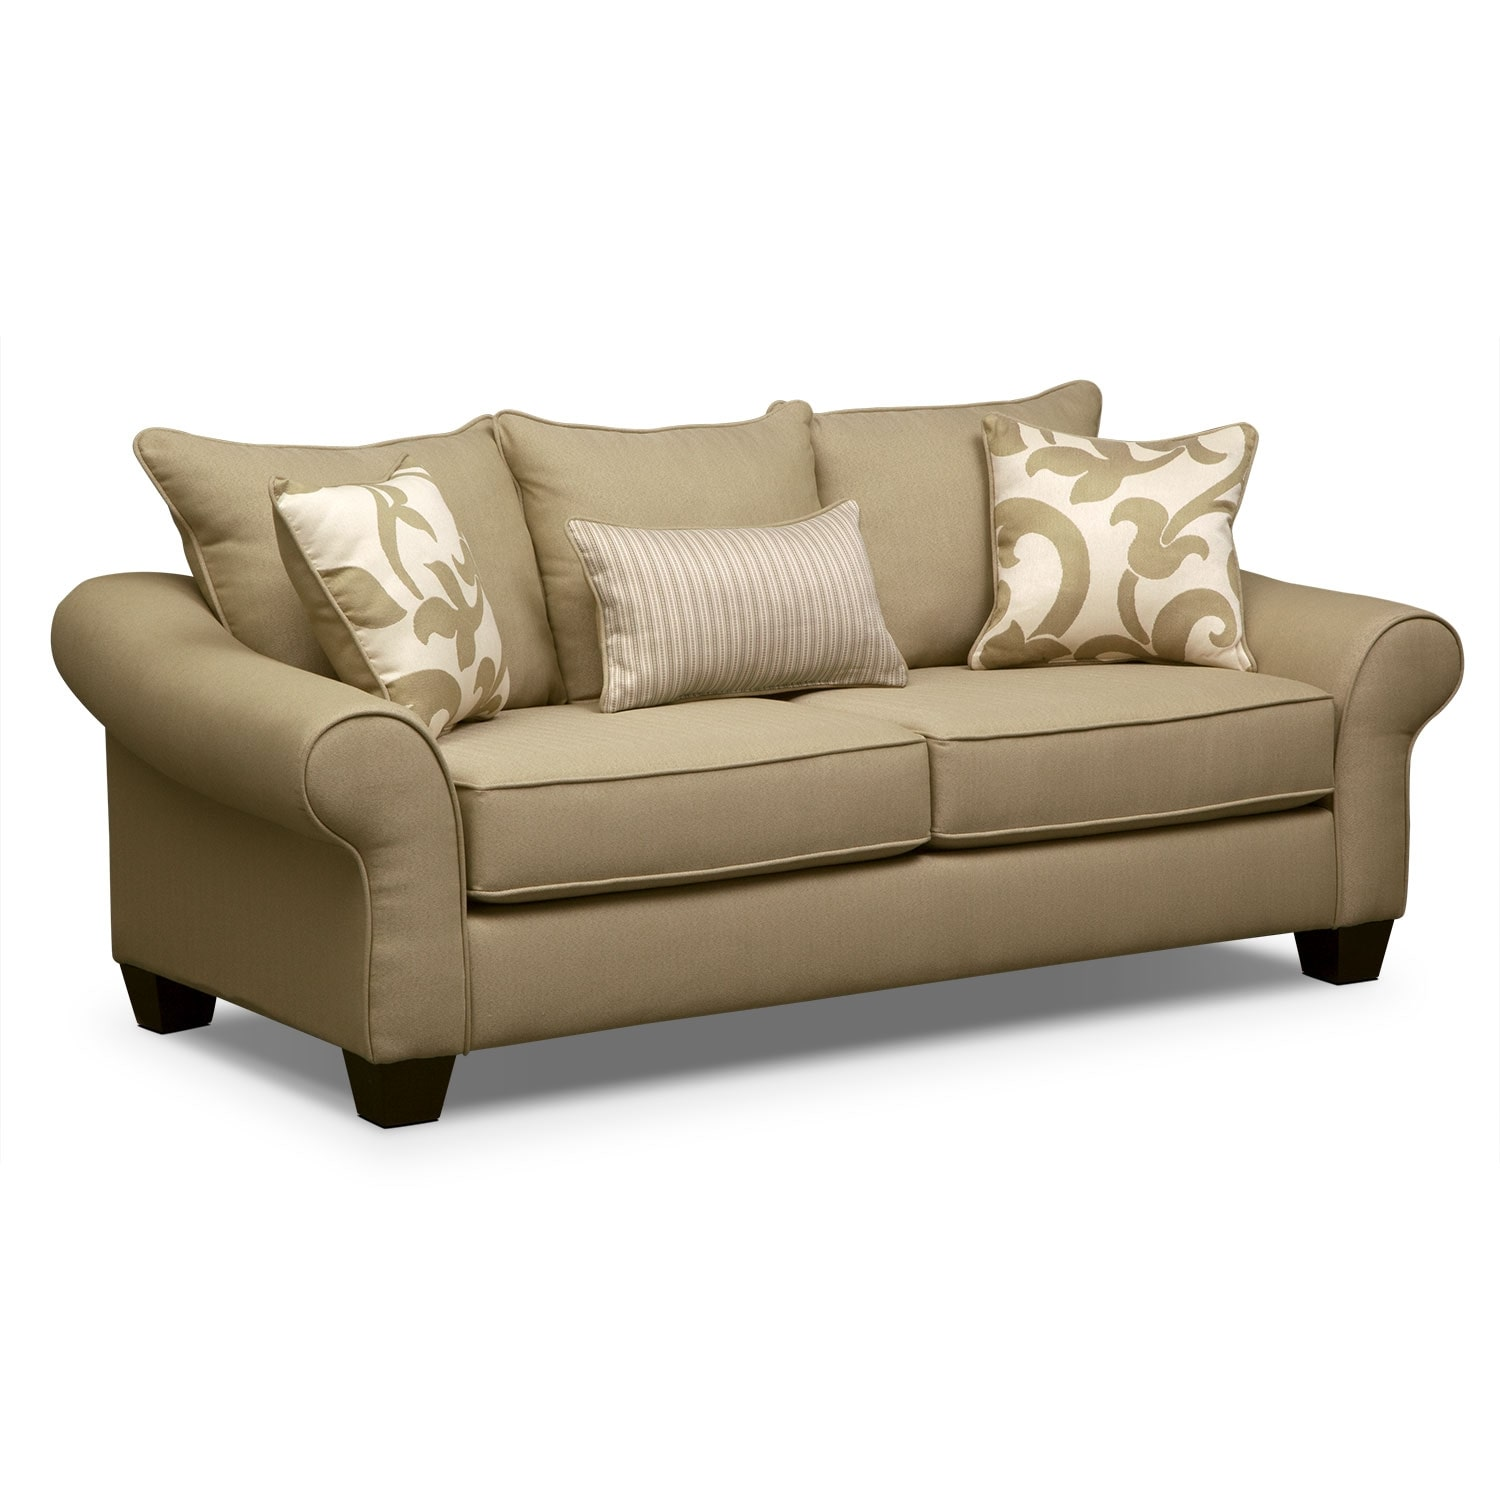 Colette Khaki Sofa Value City Furniture